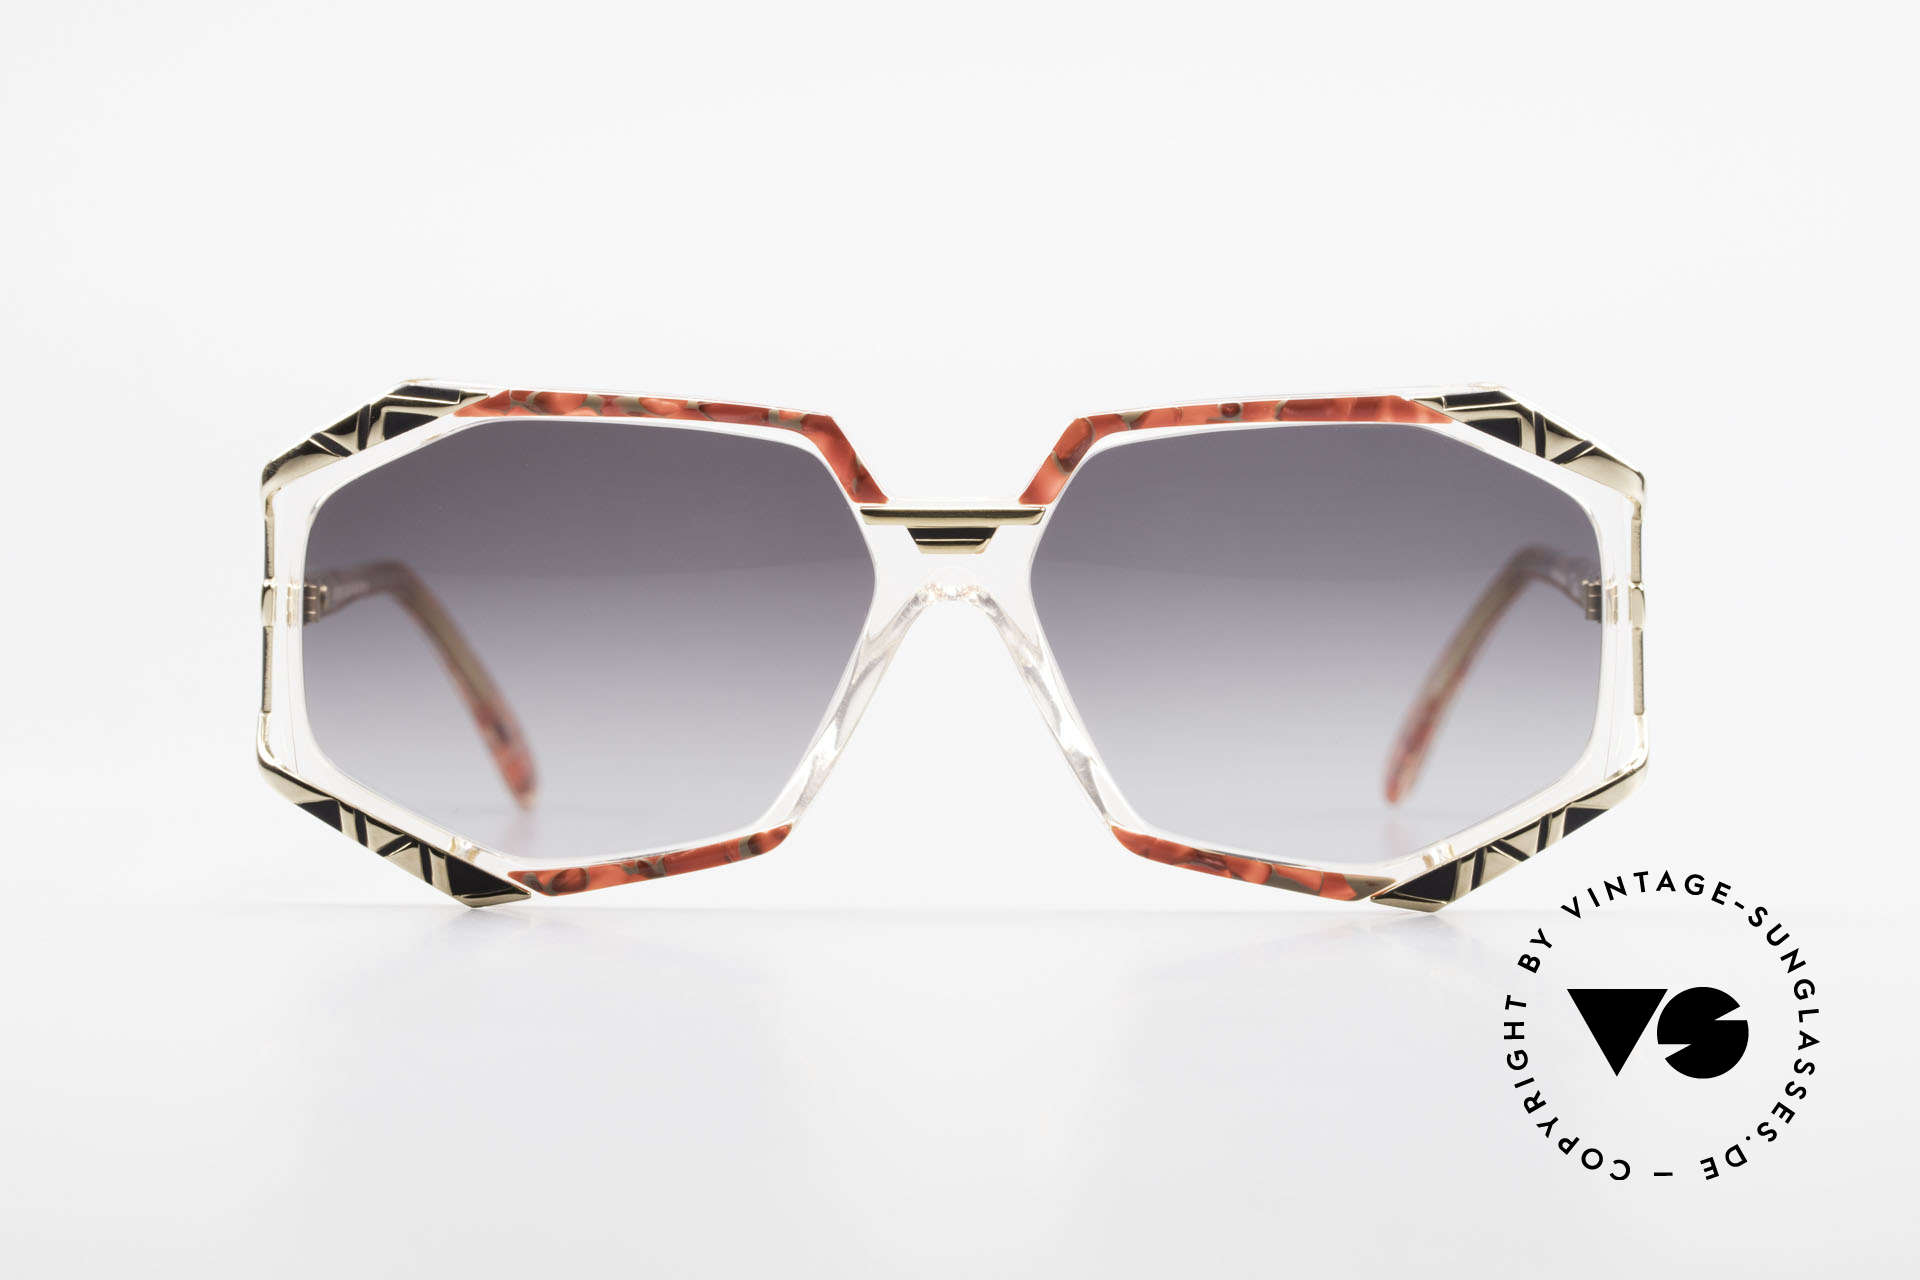 Cazal 355 Spectacular Cazal Sunglasses, distinctive combination of colors, shape and materials, Made for Women